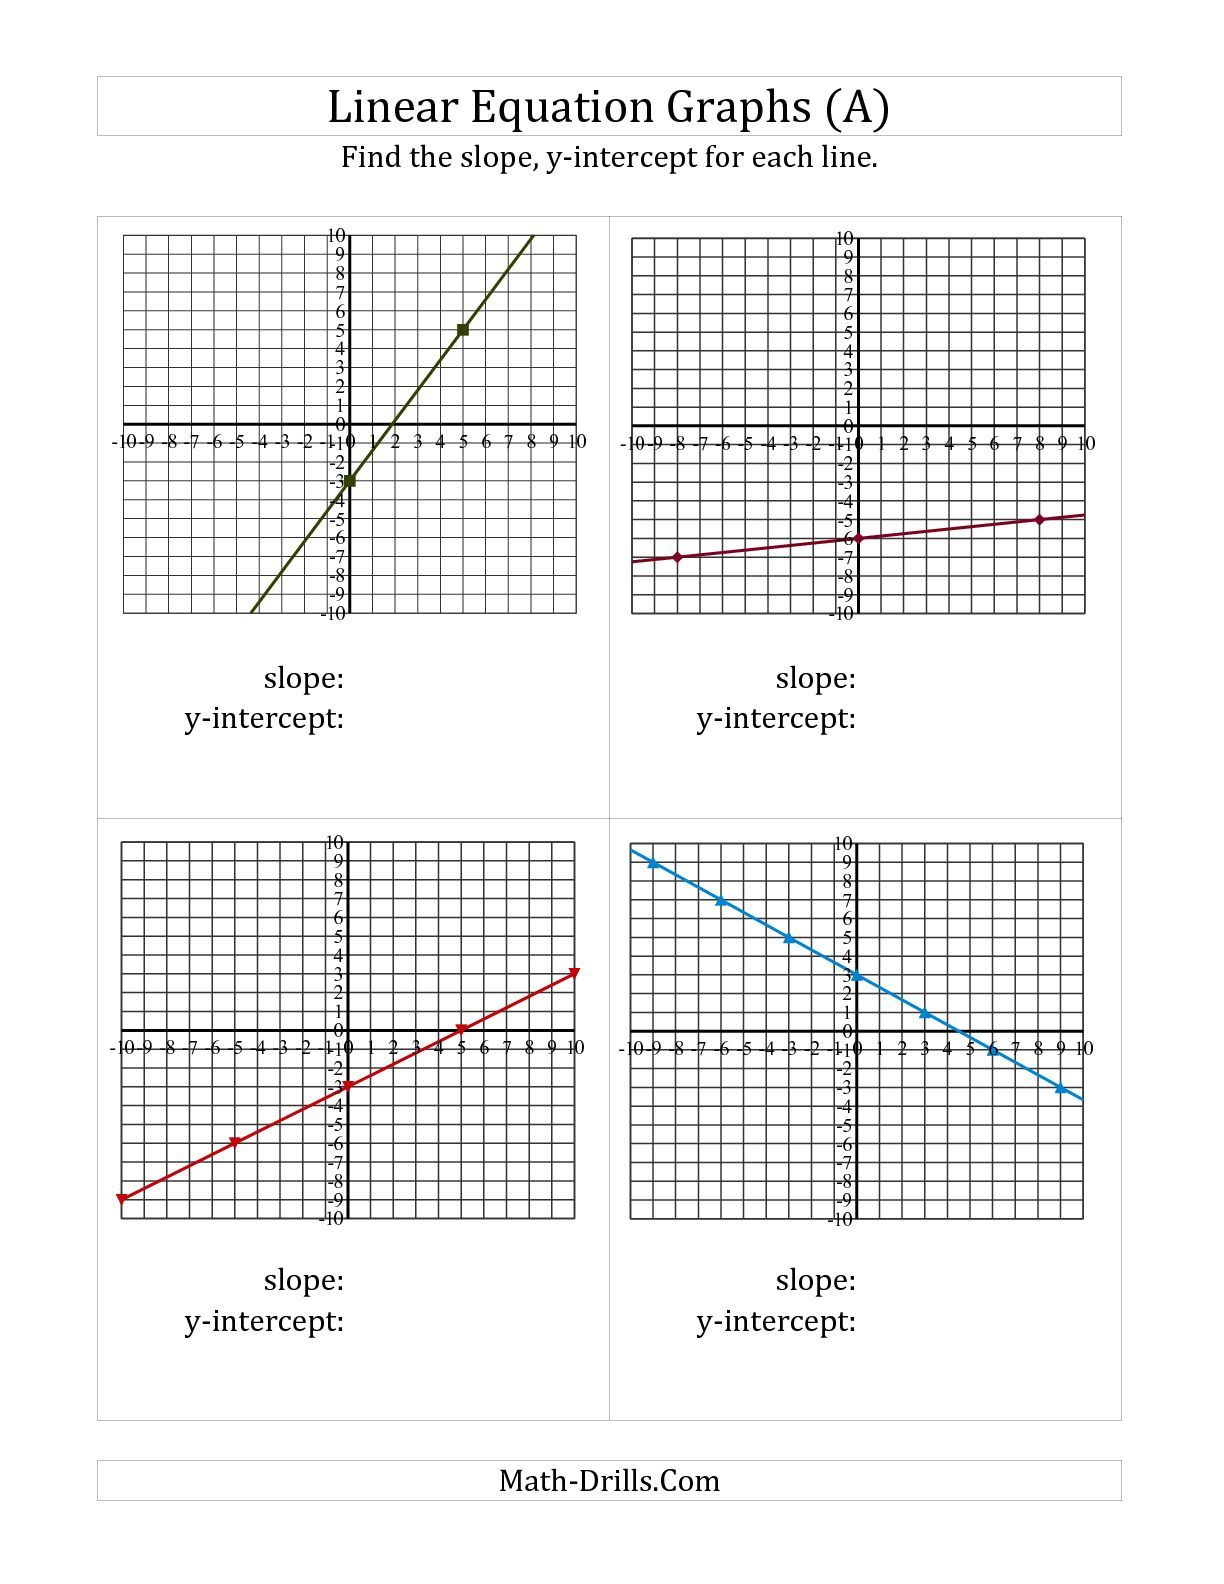 Worksheets Graphing Linear Equations Practice Worksheet the finding slope and y intercept from a linear equation graph math worksheet algebra page at drills